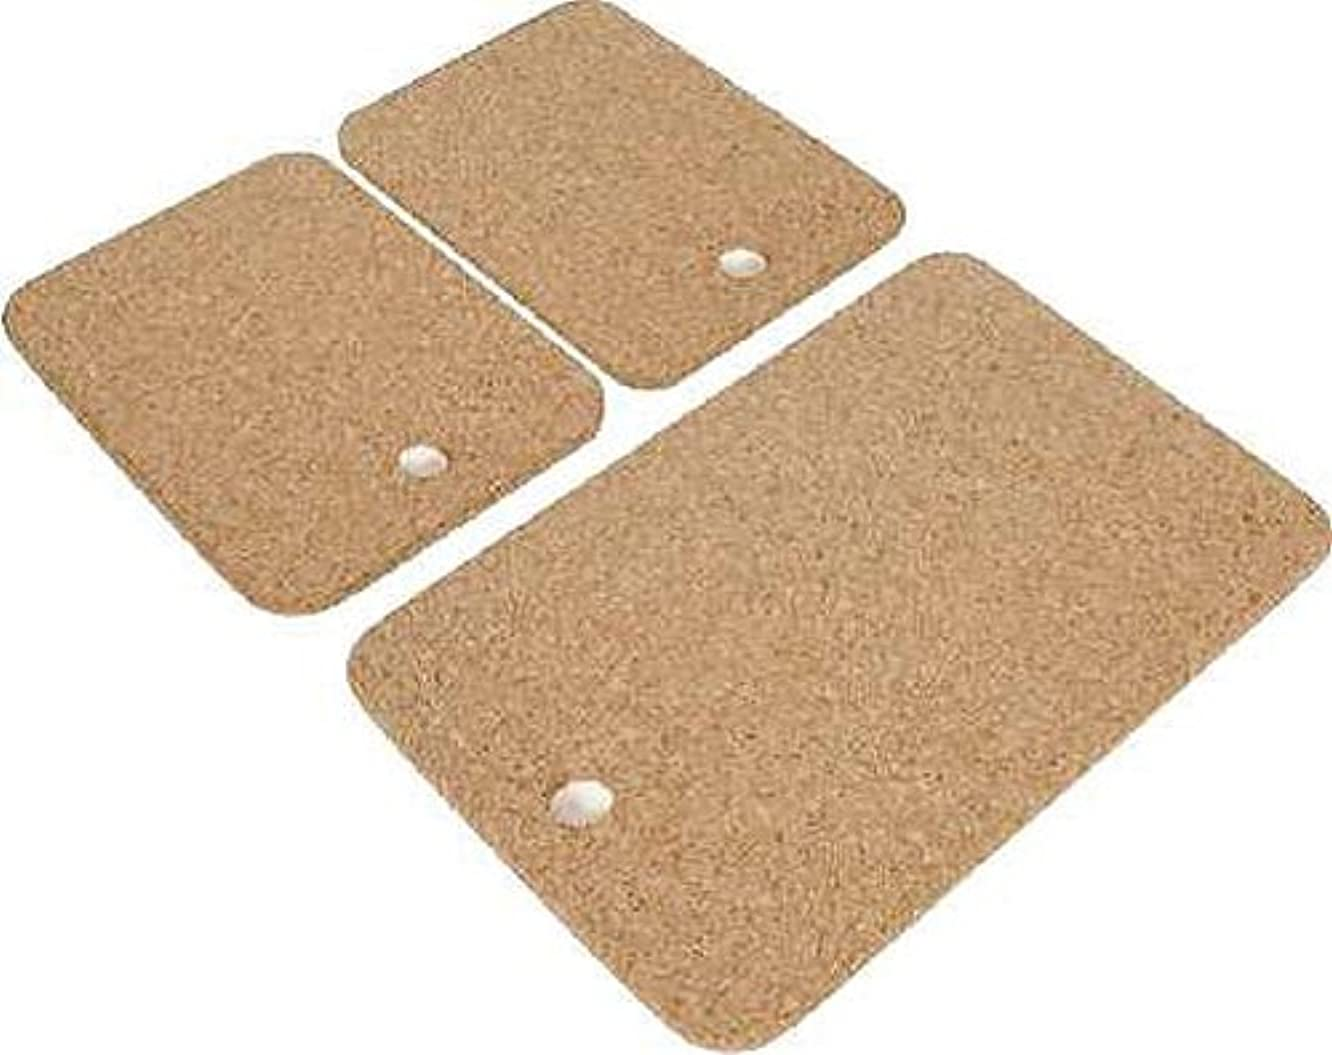 Cork Nature 490522 Cork Cheese Cutting Boards, Set of 3